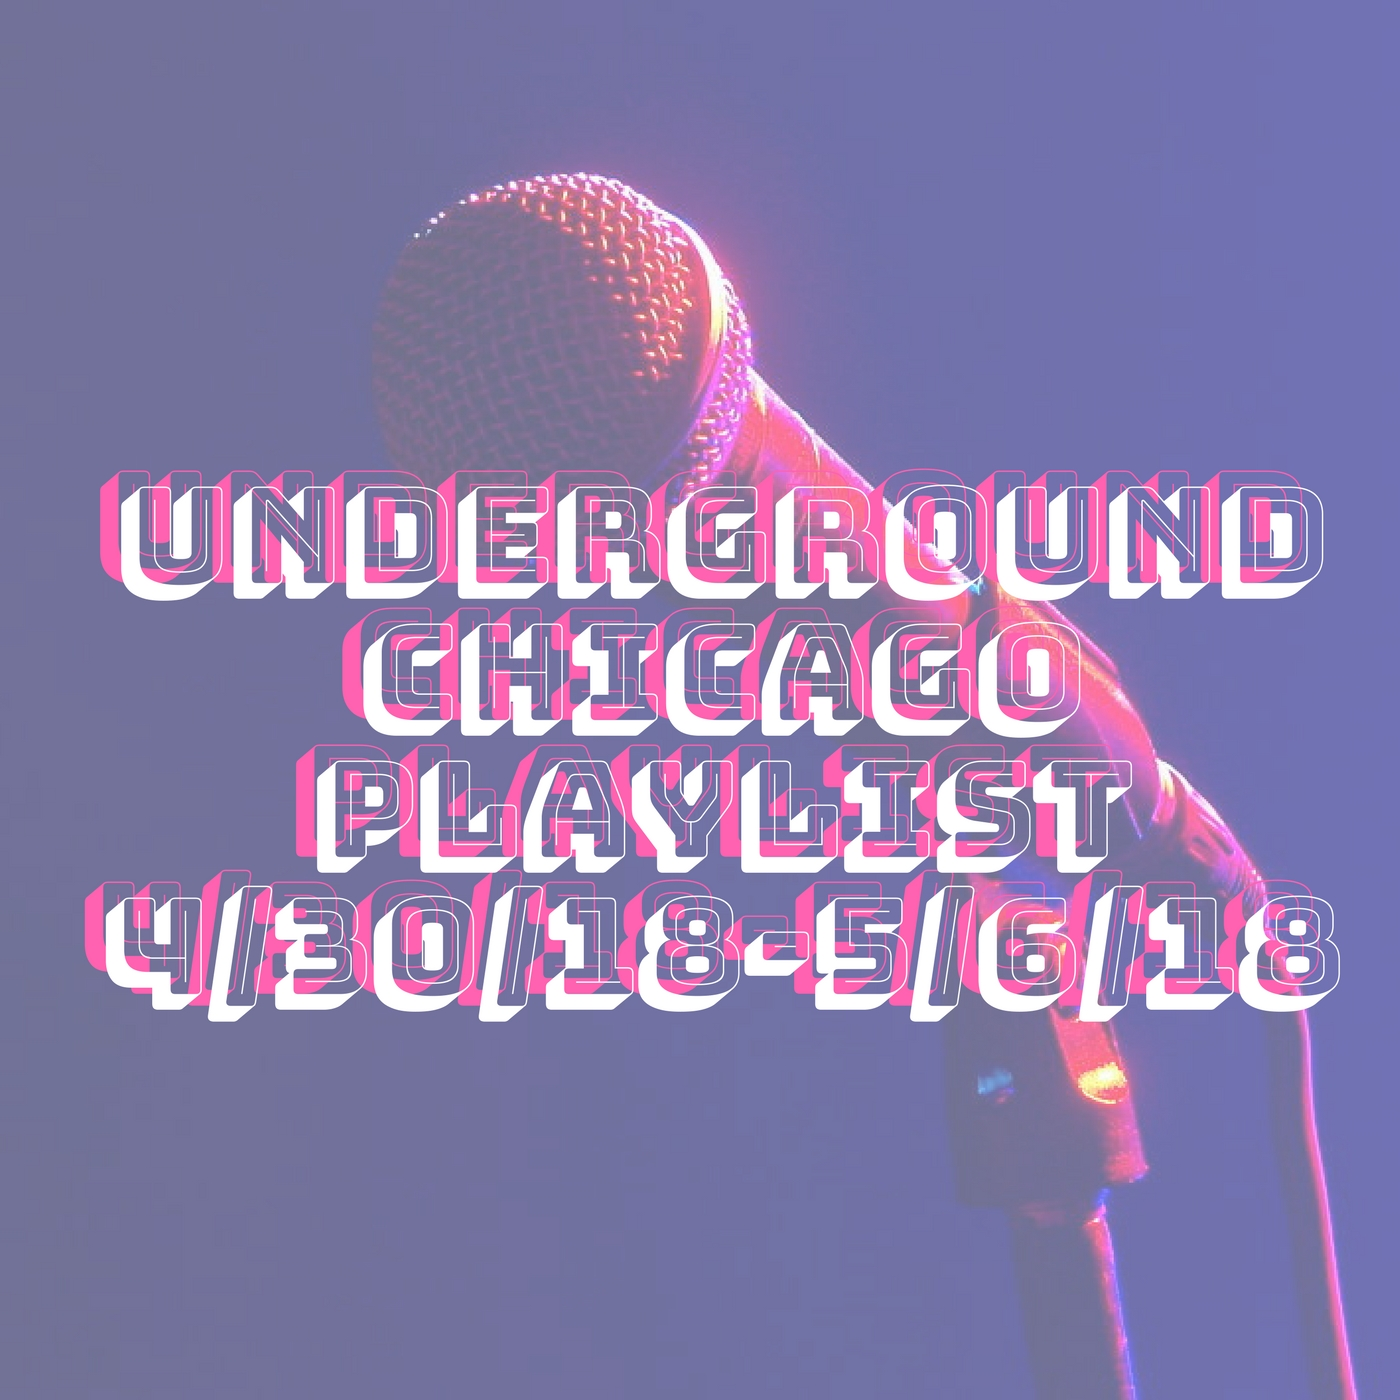 Underground Chicago Playlist 4/30/18-5/6/18